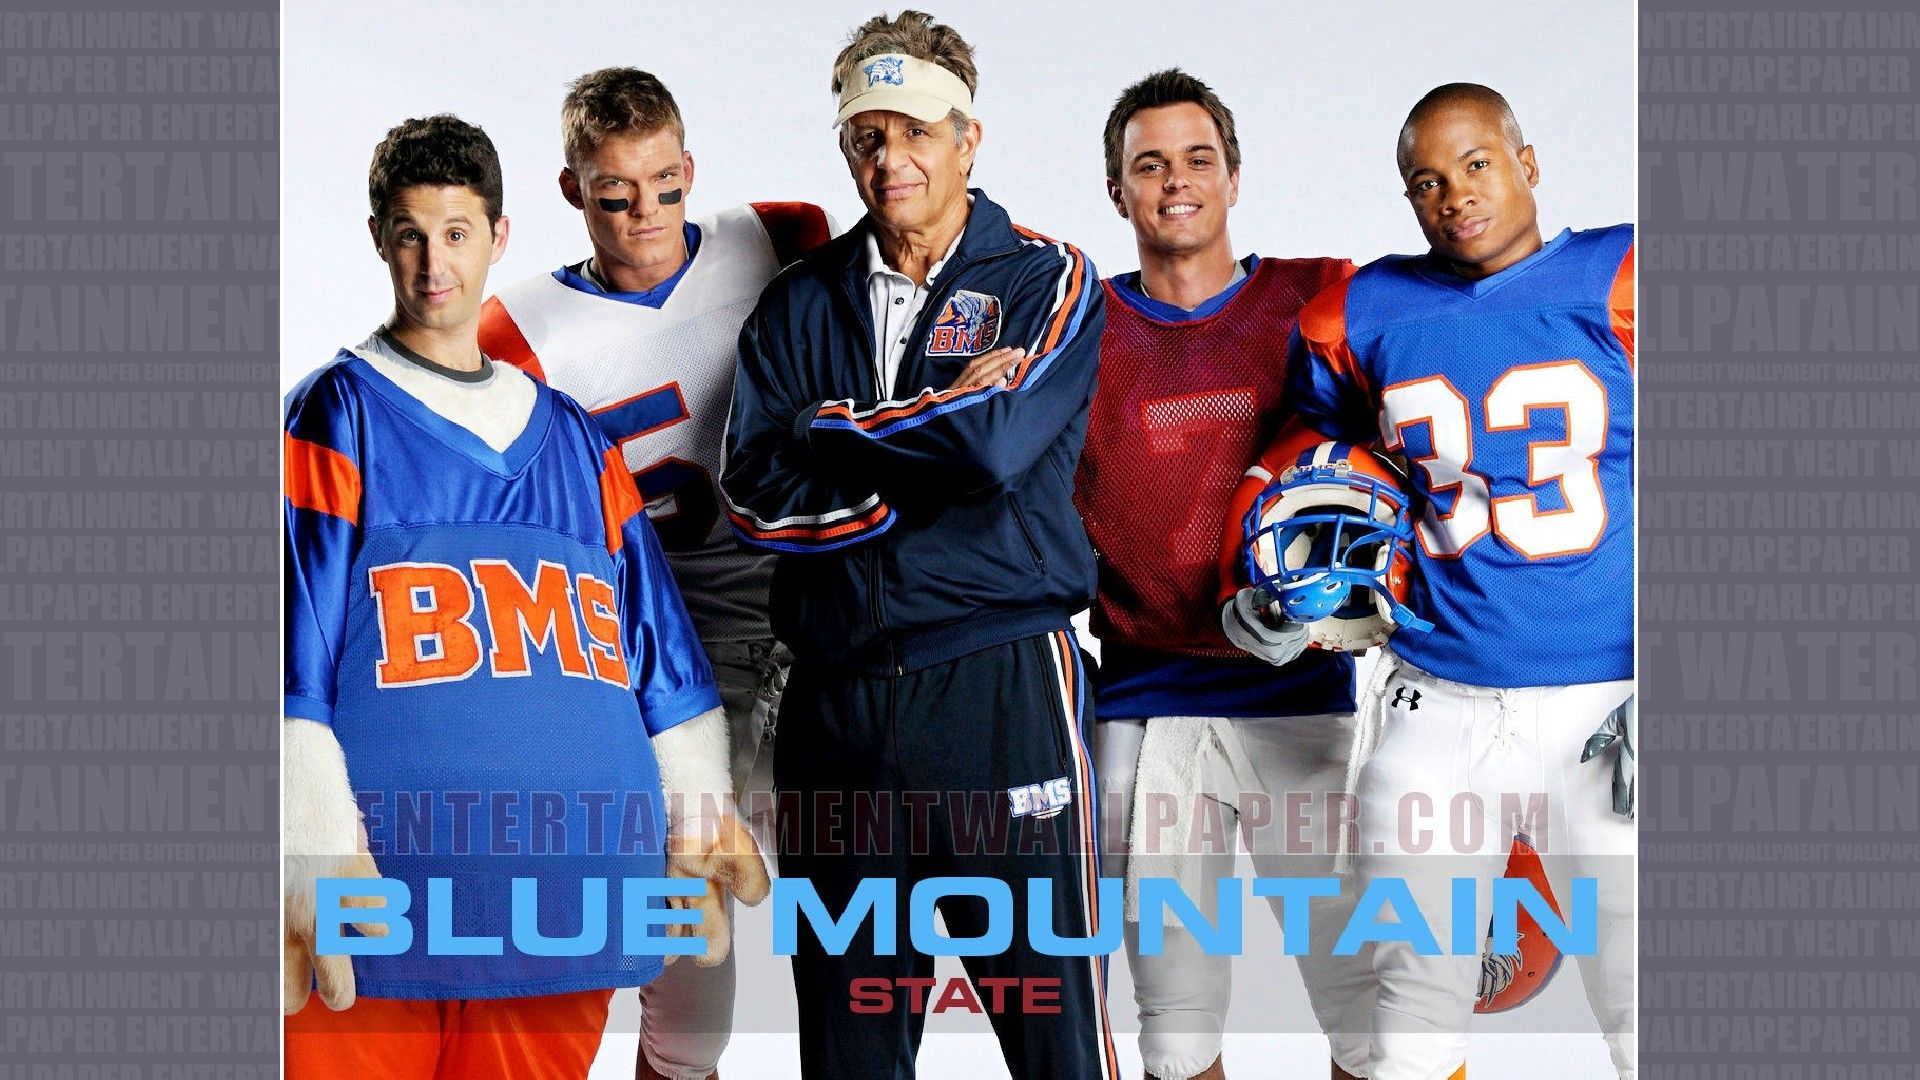 1920x1080 Blue Mountain State Wallpaper Original Size Download Now With Images Blue Mountain State Mountain States Blue Mountain